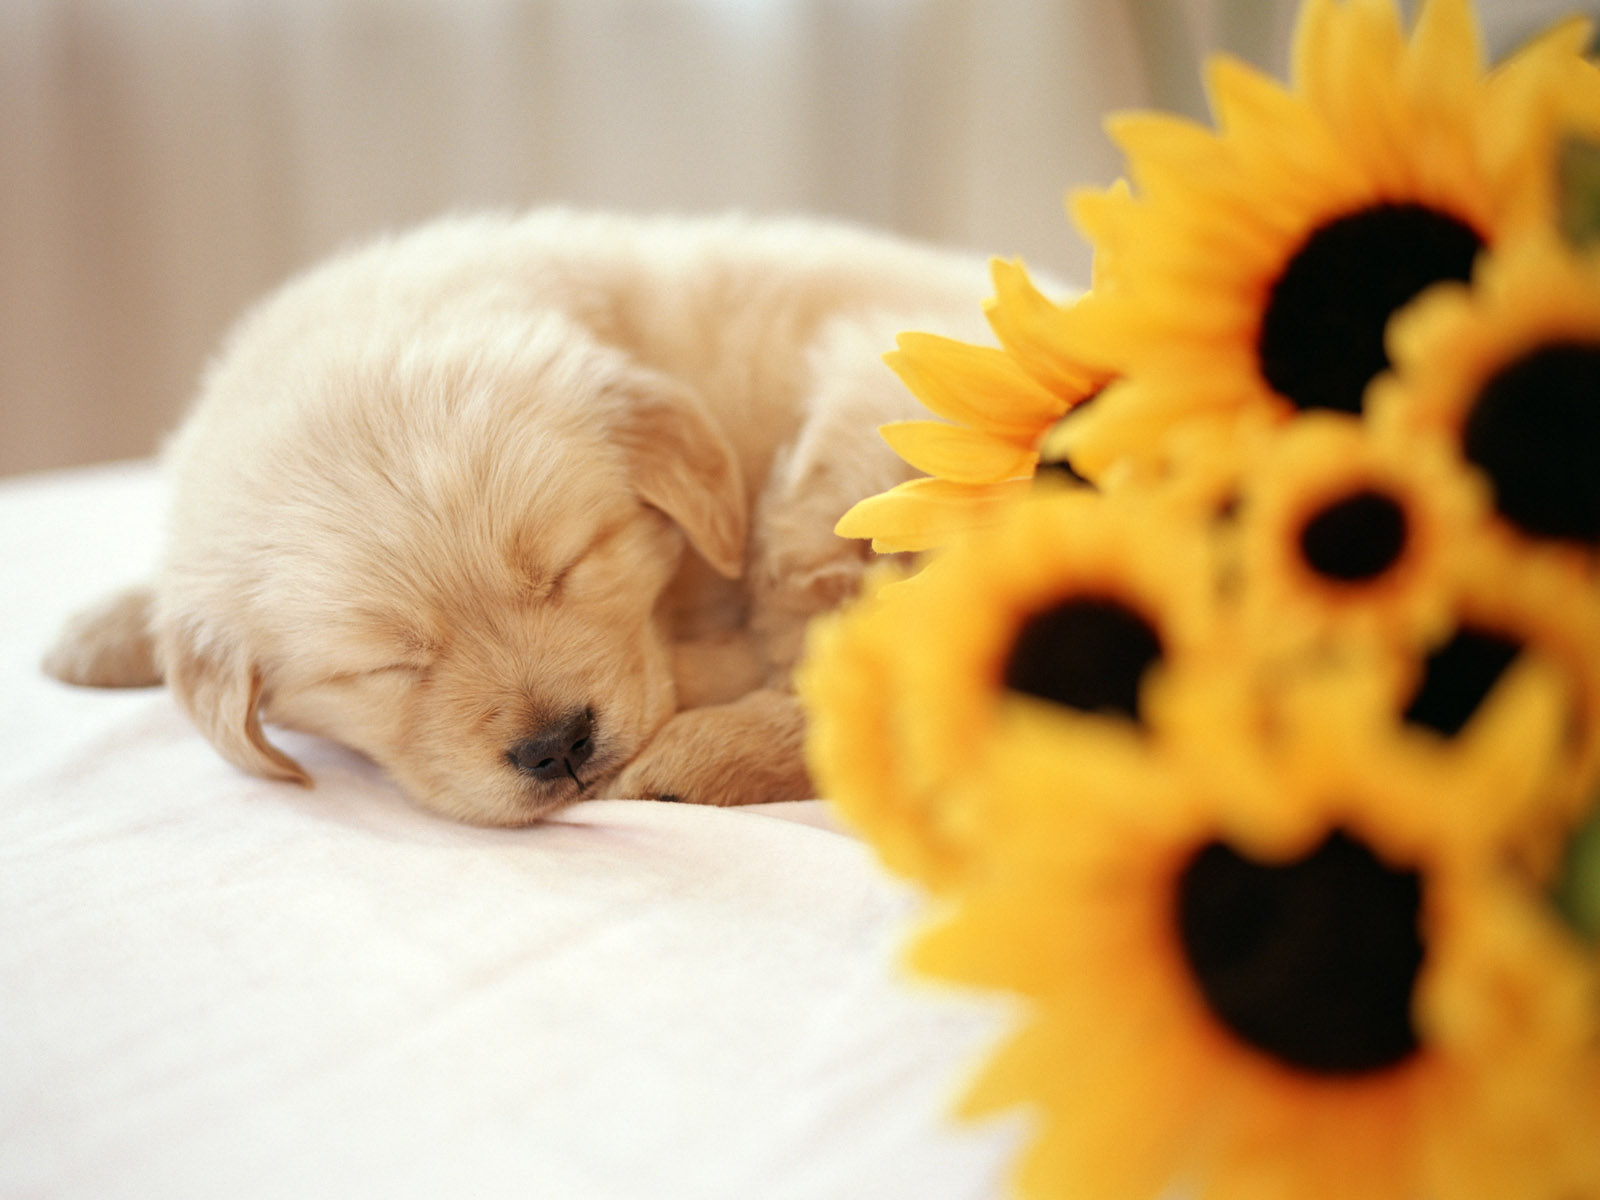 Dog Wallpaper And Background Image 1600x1200 Id 7555